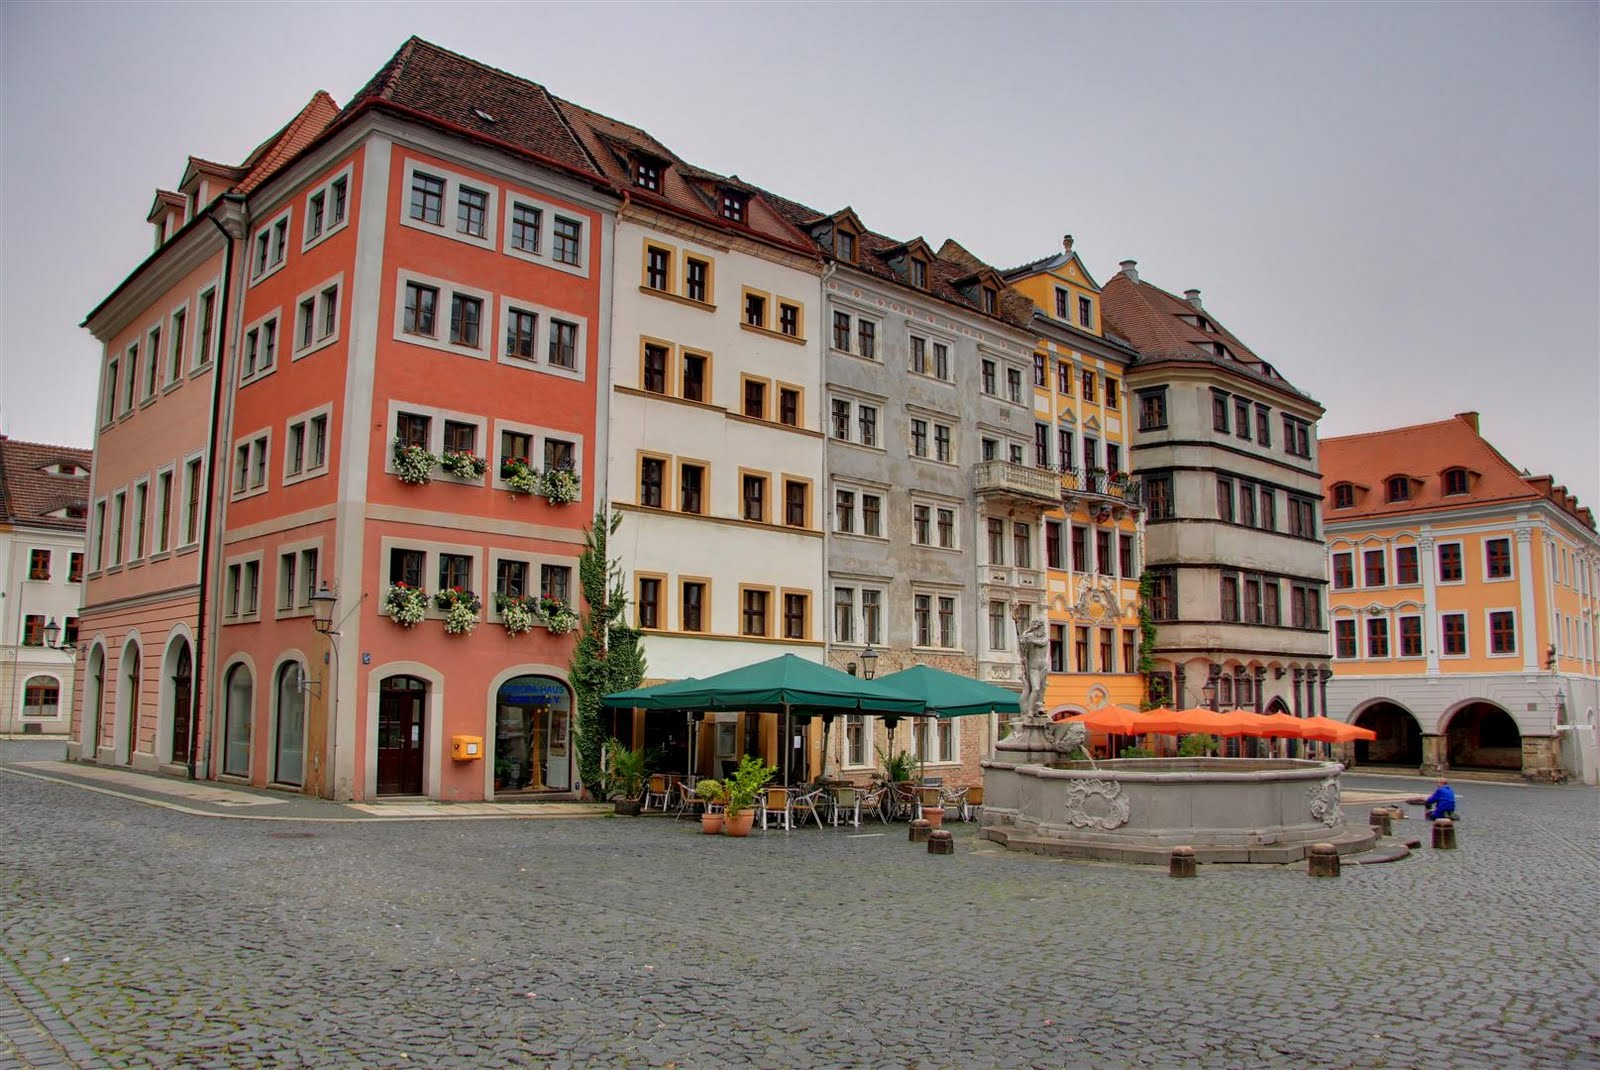 Gorlitz Germany  city pictures gallery : Bautzen, Gorlitz & Bad Saarow Germany | Europe By Camper ...